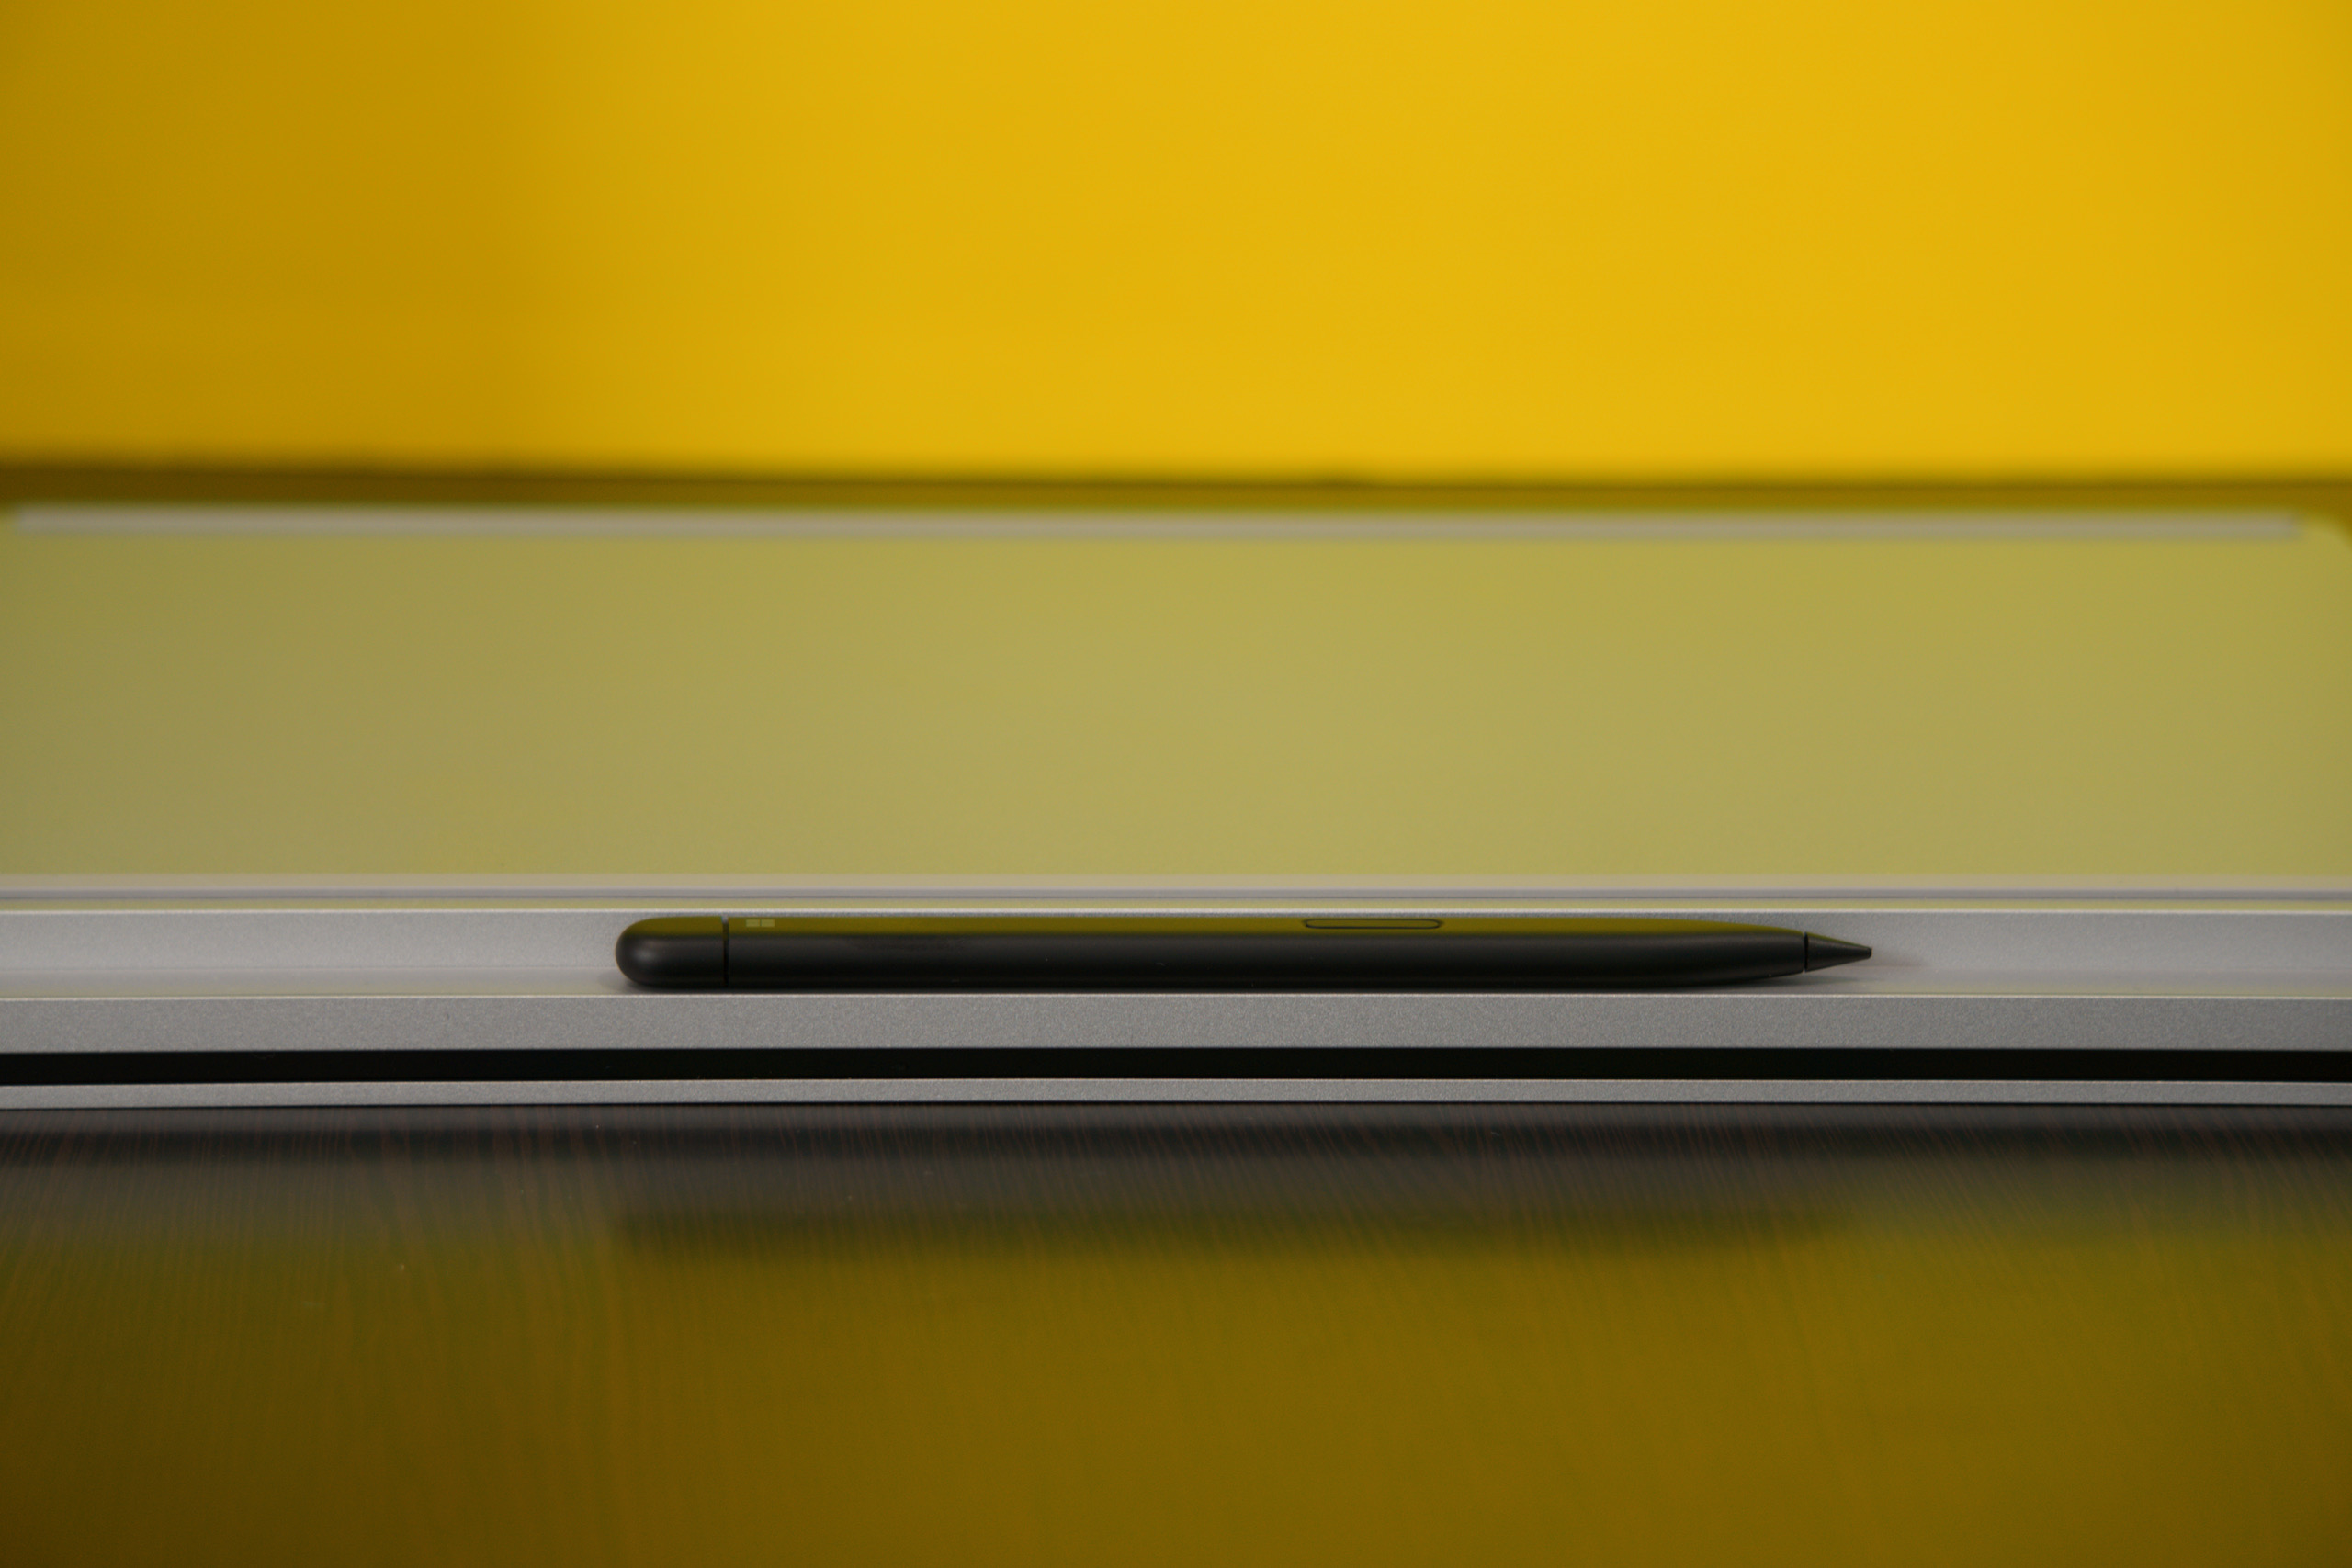 The Surface Slim Pen 2 attaches and charges under the lip on the front of the laptop.